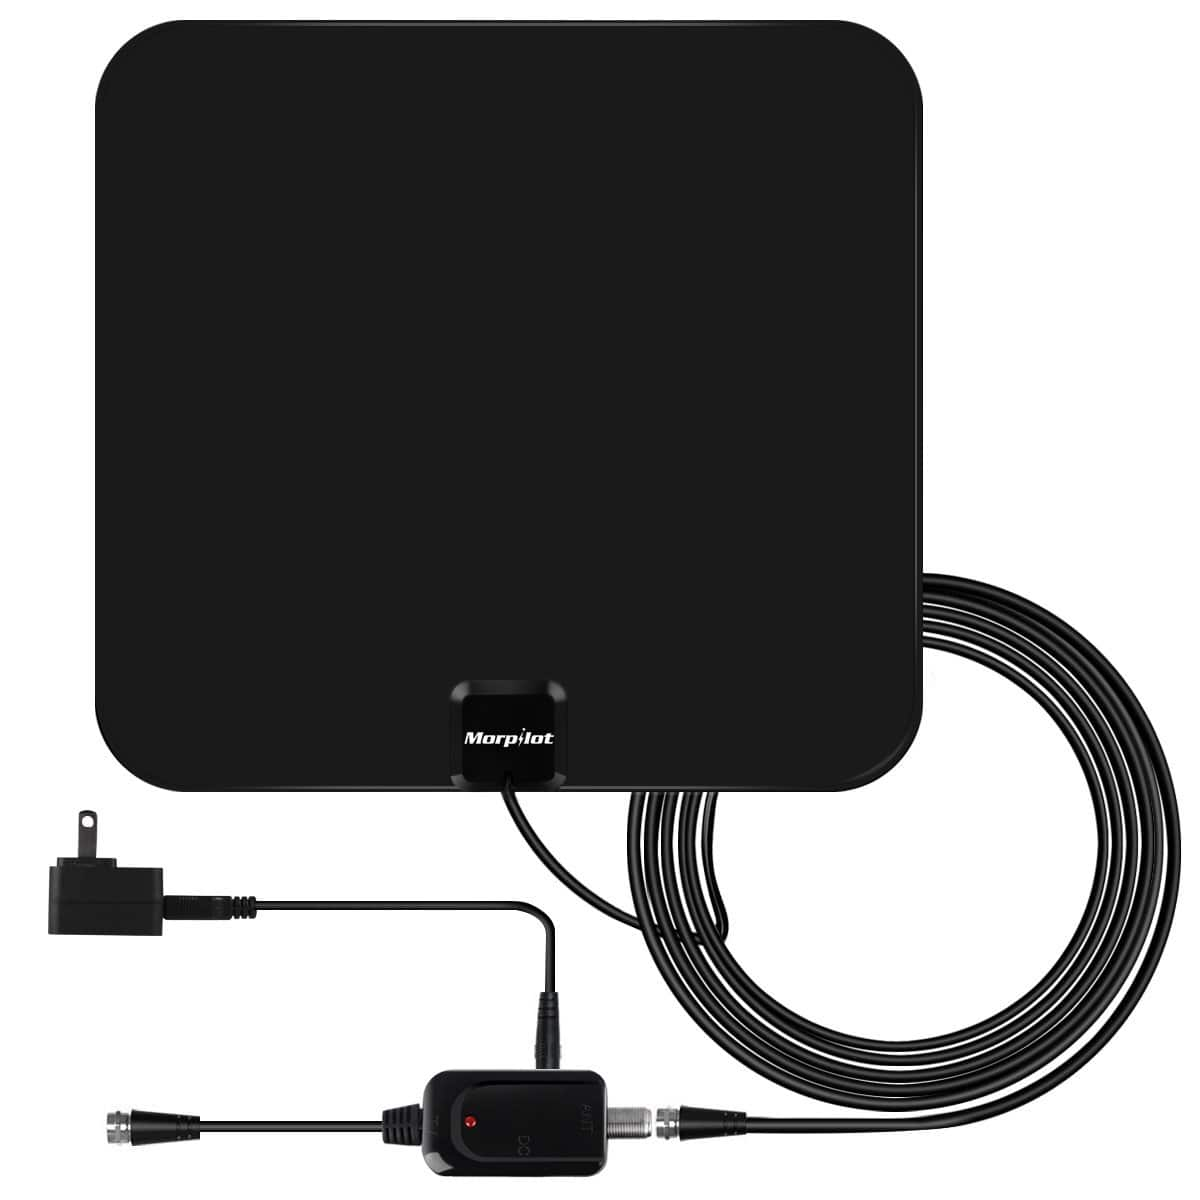 HDTV Antenna with Detachable Amplifier Signal Booster 60+ Mile Range (Free Prime Shipping) $13.65